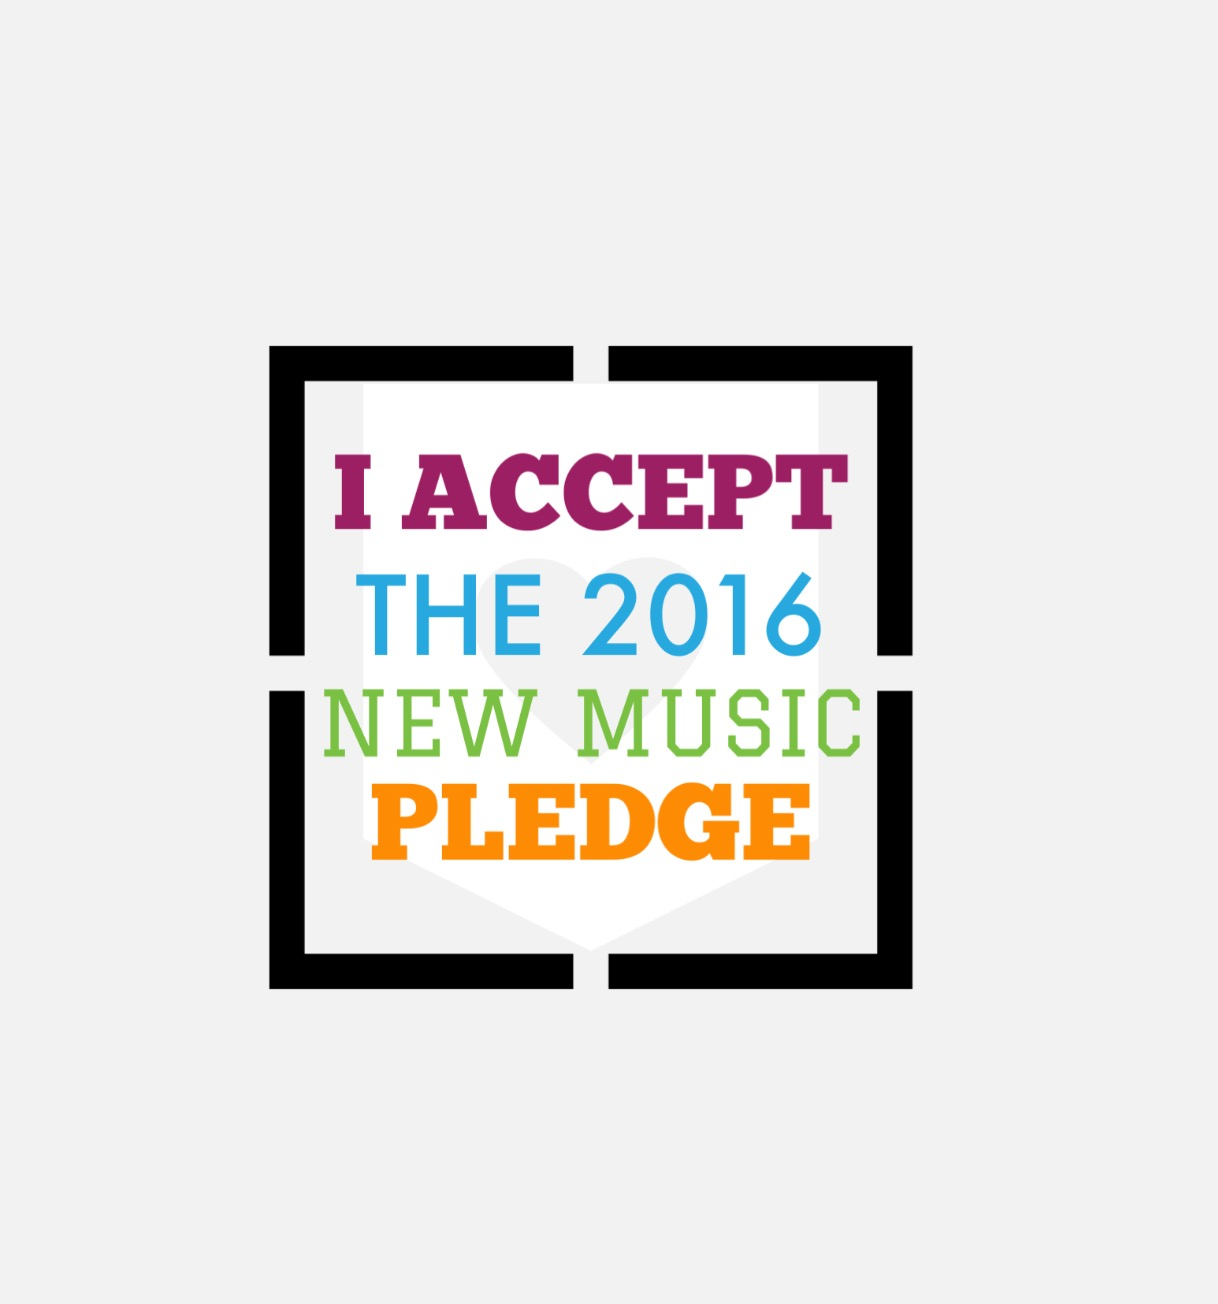 2016 New Music Pledge